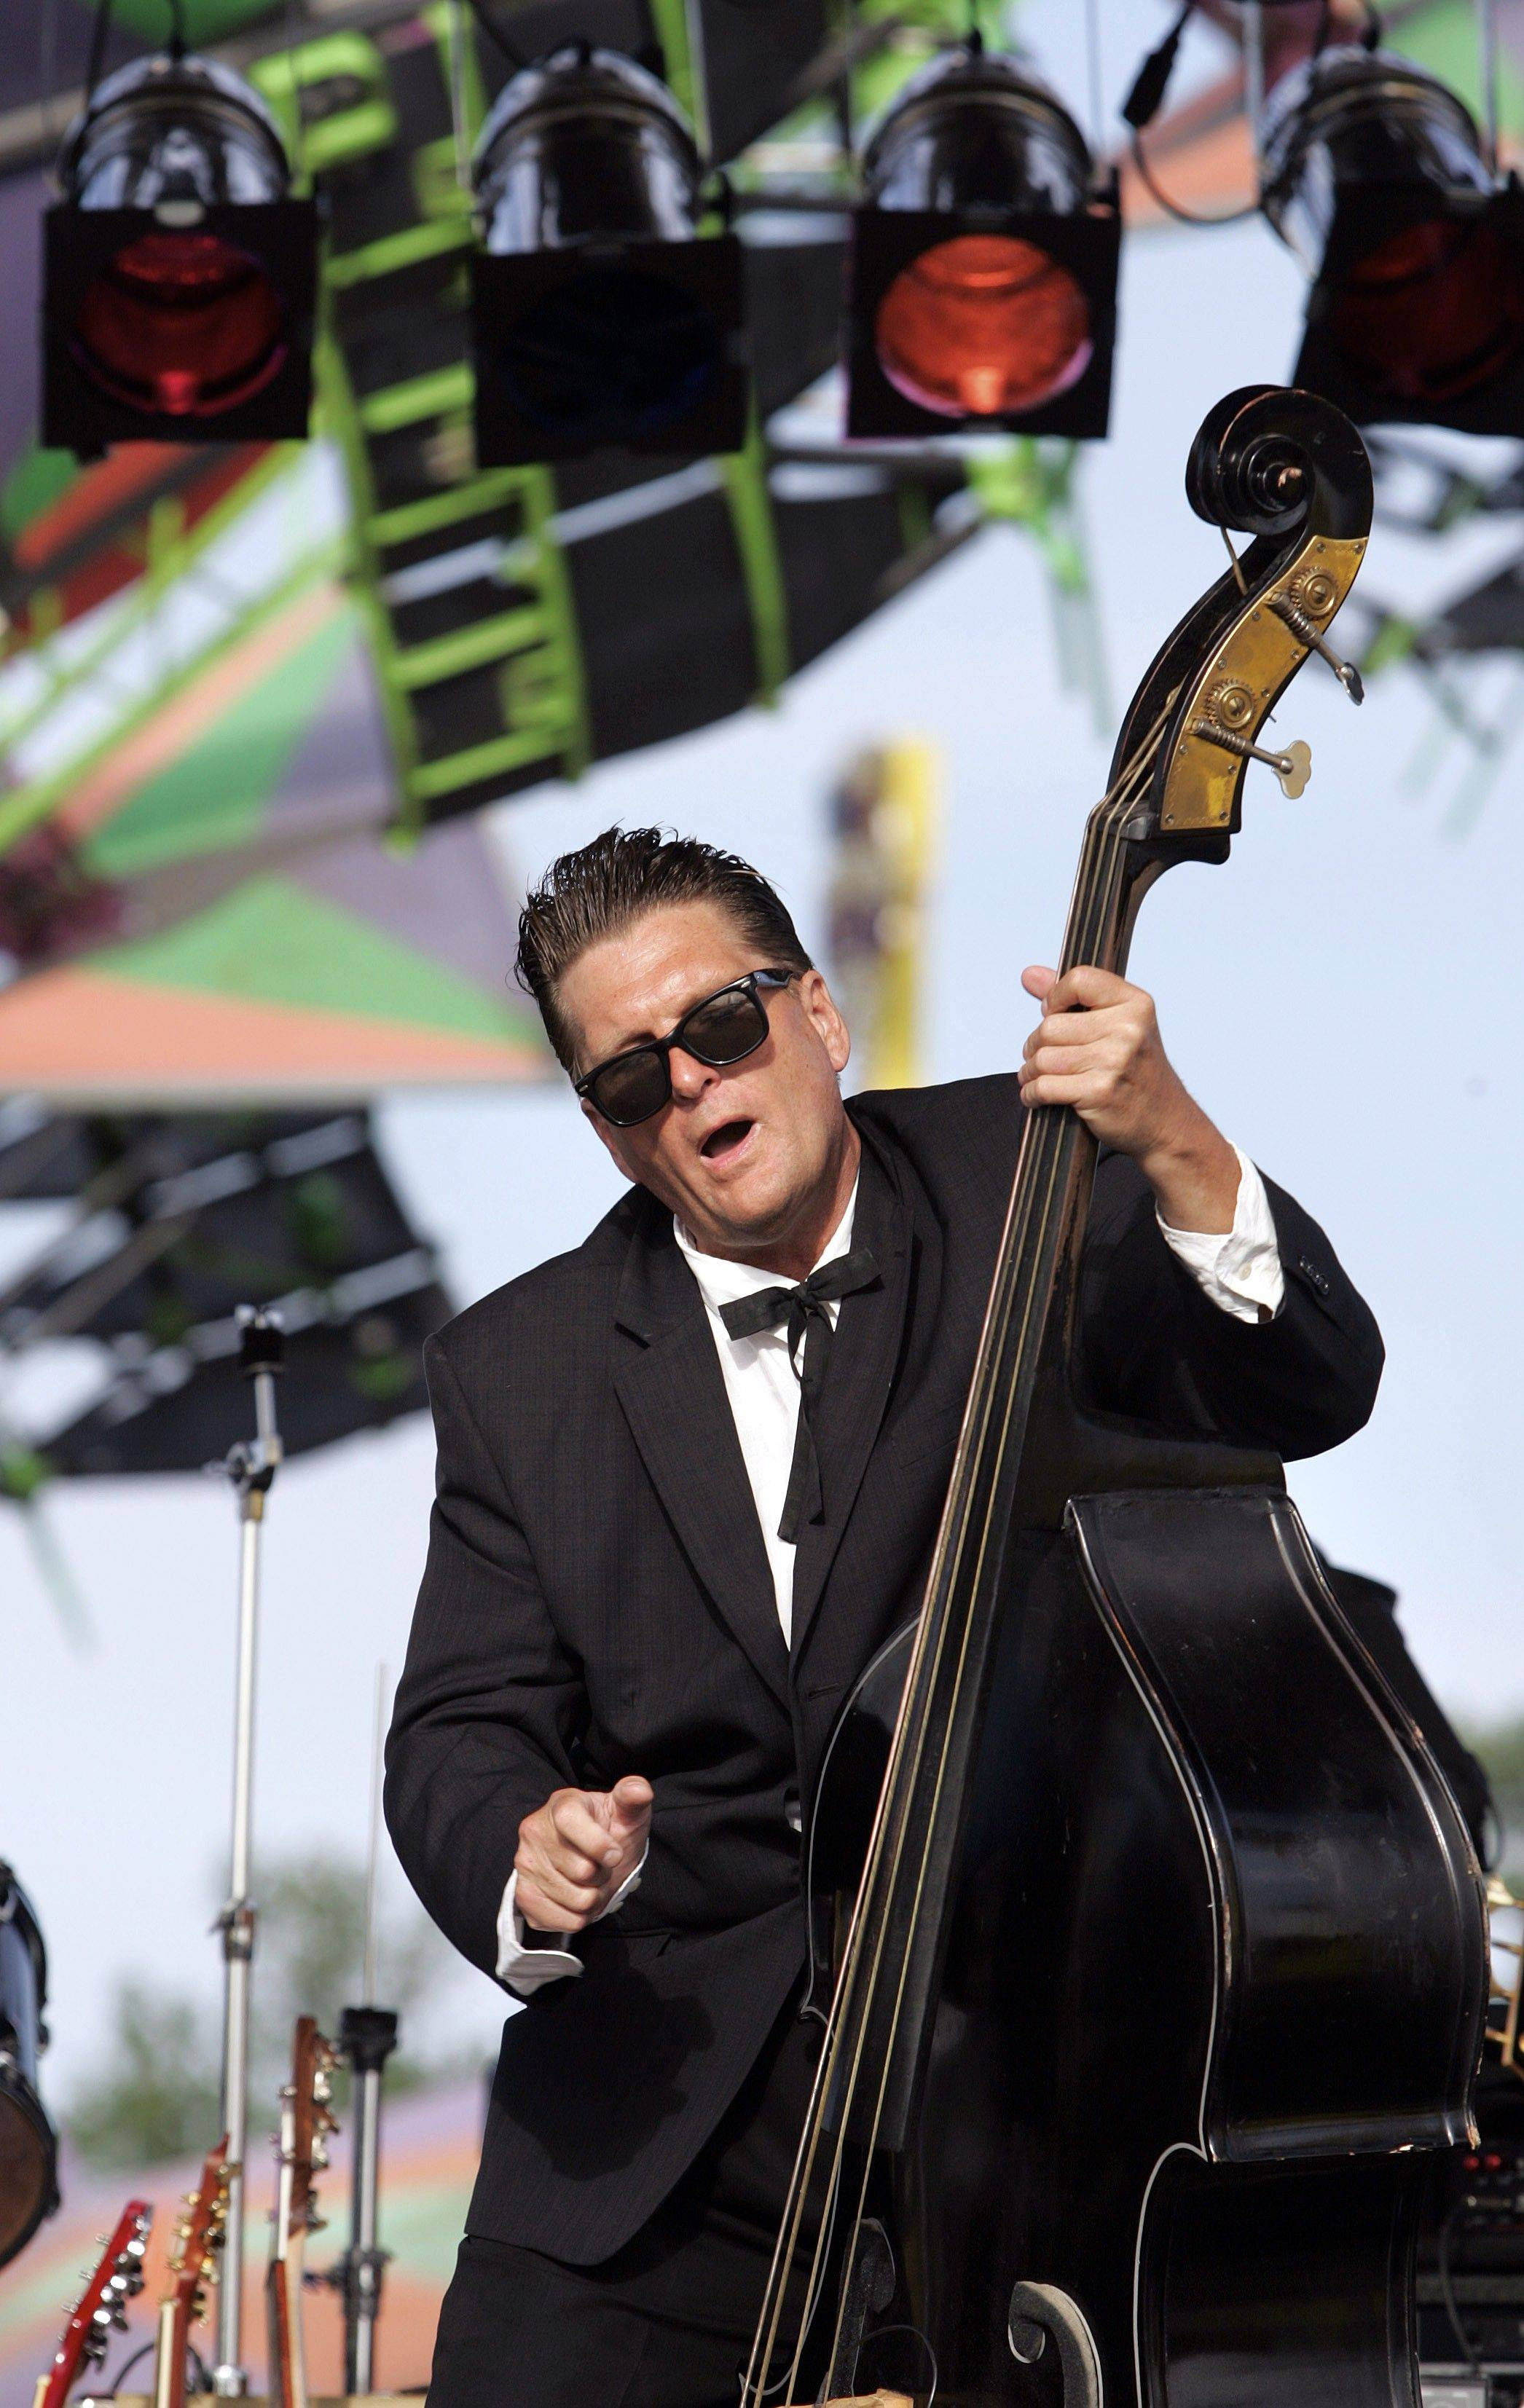 Craig Gigstad of The Neverly Brothers plays his bass at an outdoor festival. The Neverly Brothers will play a free show Sunday, June 26, at Geneva Commons.